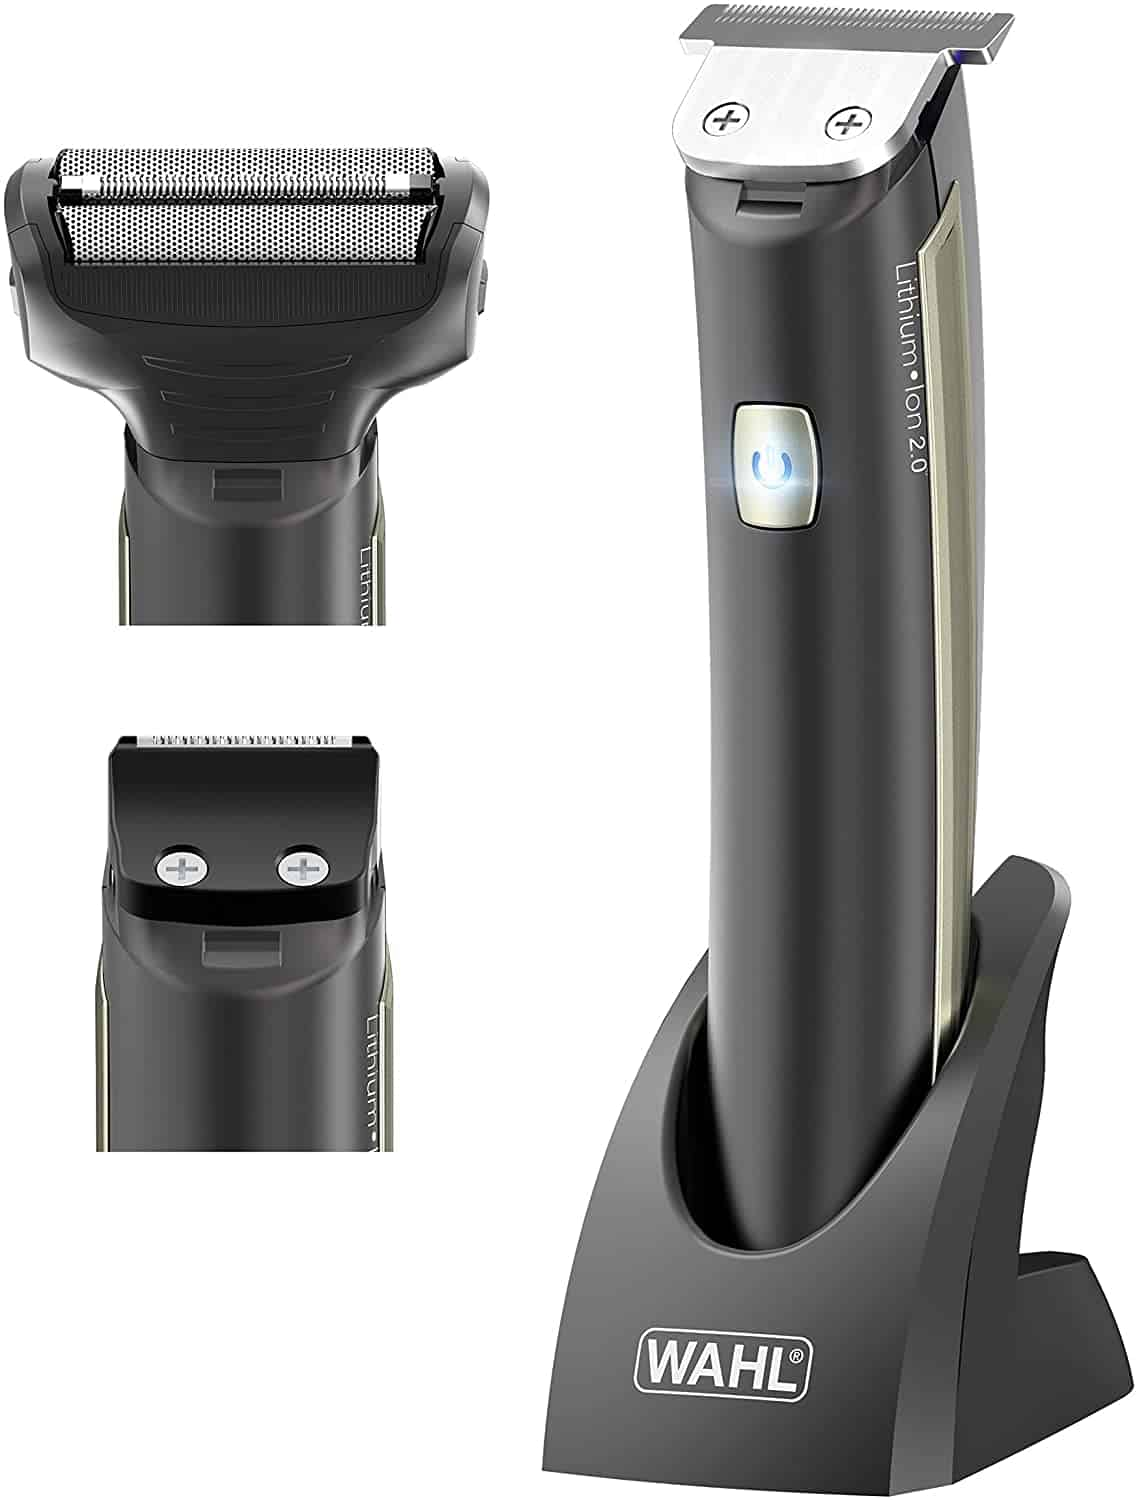 wahl 3 in 1 trimmer